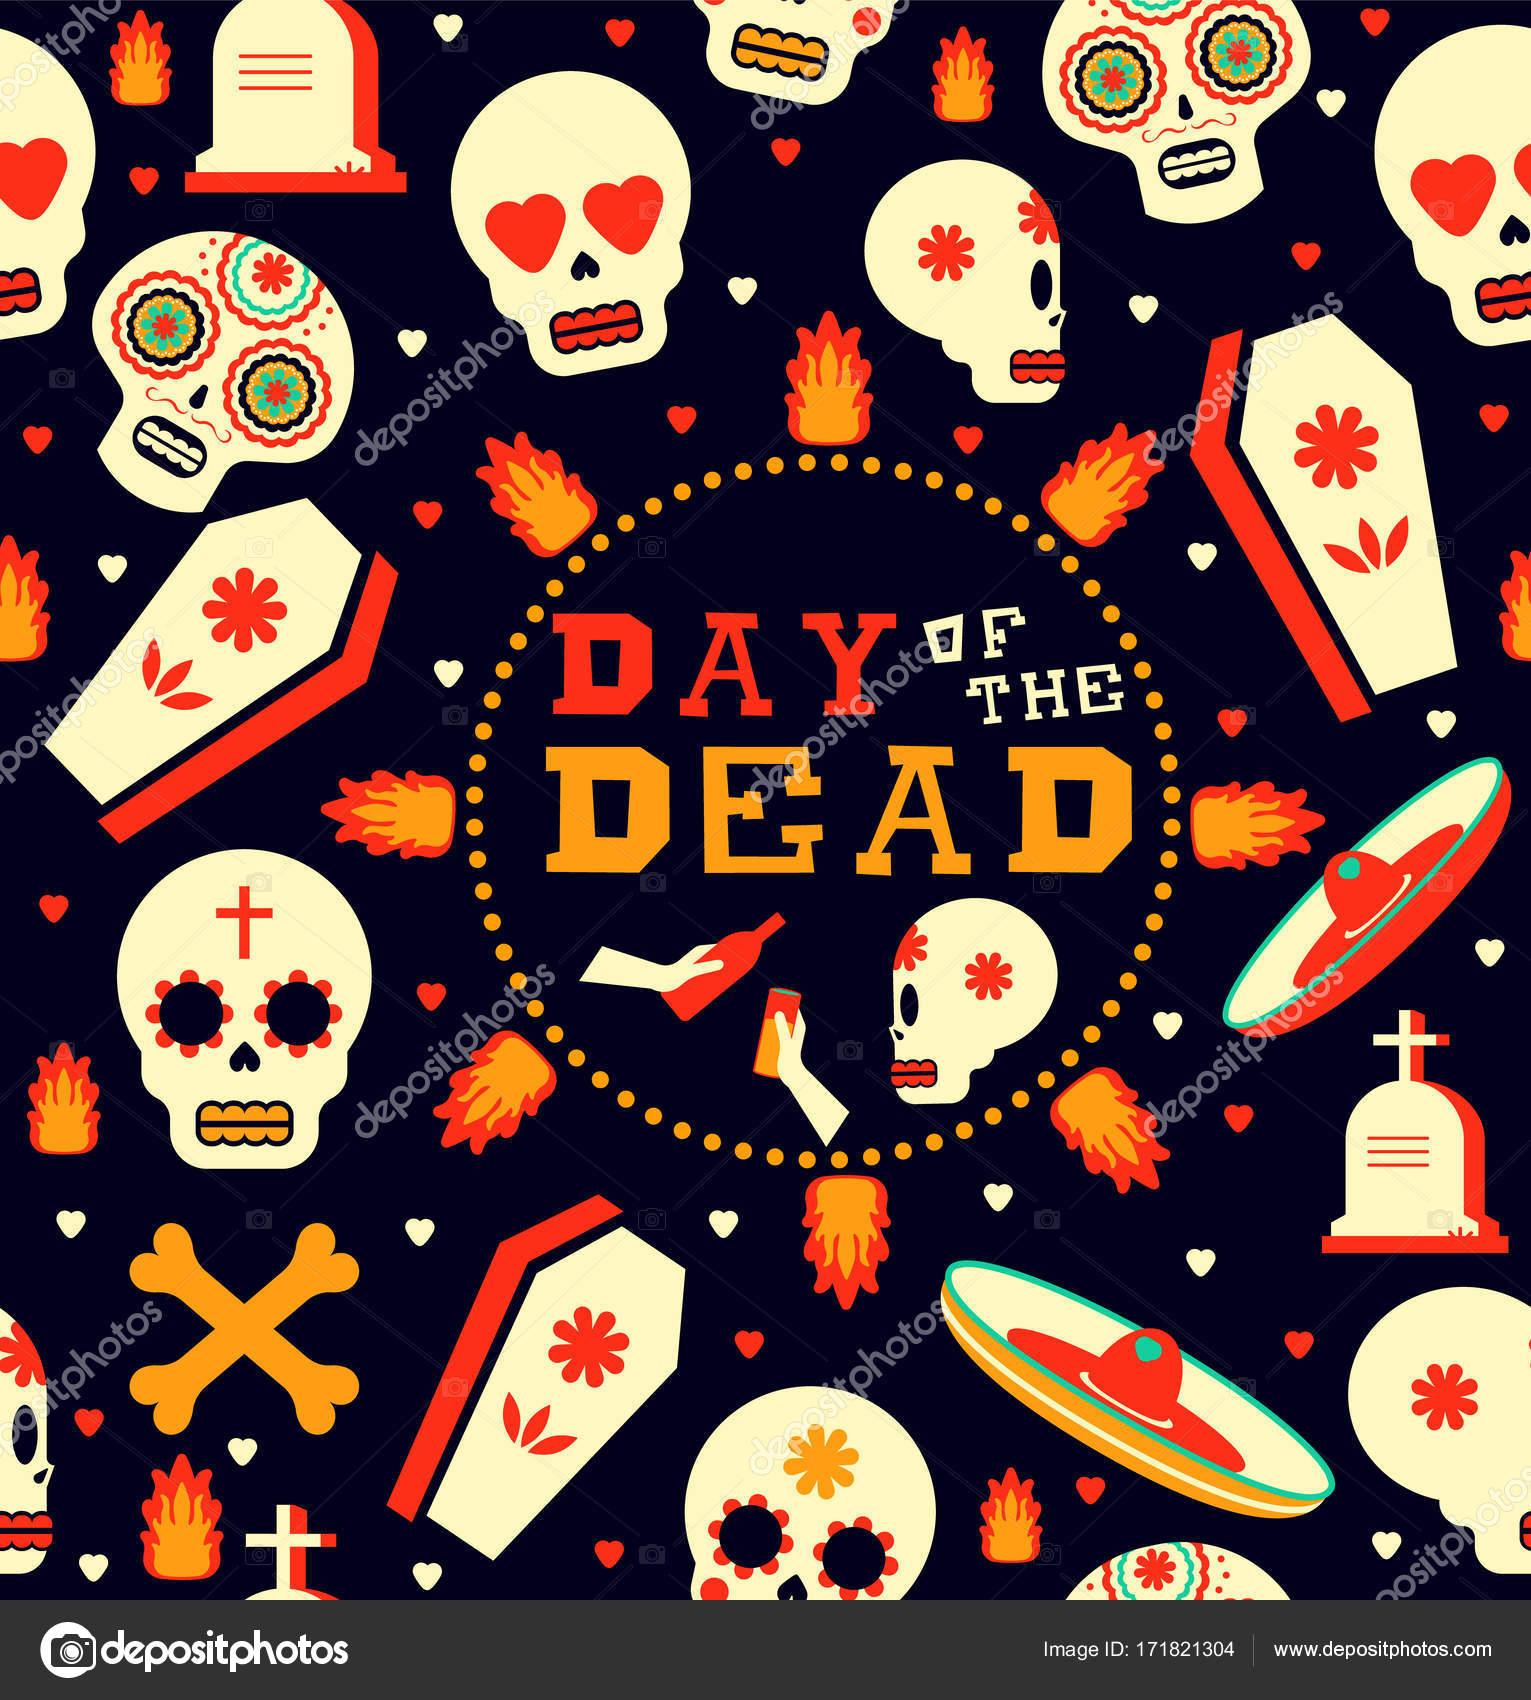 Mexican Day Of The Dead Seamless Pattern Art Sugar Skull Emoji With Traditional Decoration Includes Mariachi Hat Fire And Grave Icons EPS10 Vector